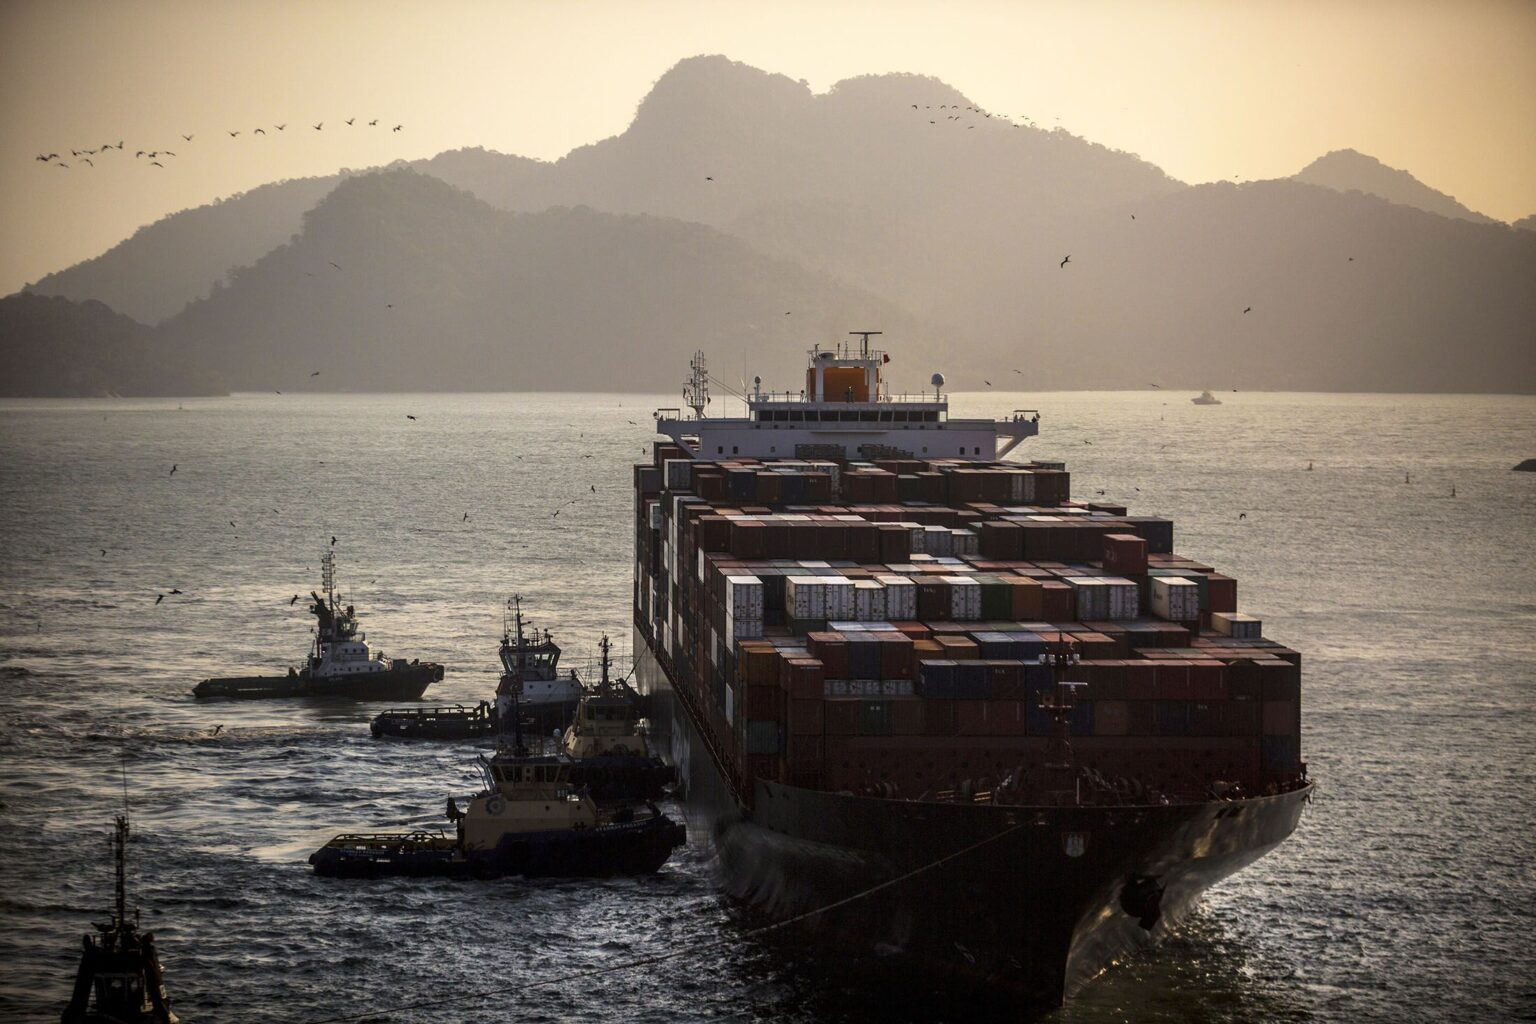 Tugs carrying a ship into the harbor in rio - data analytics